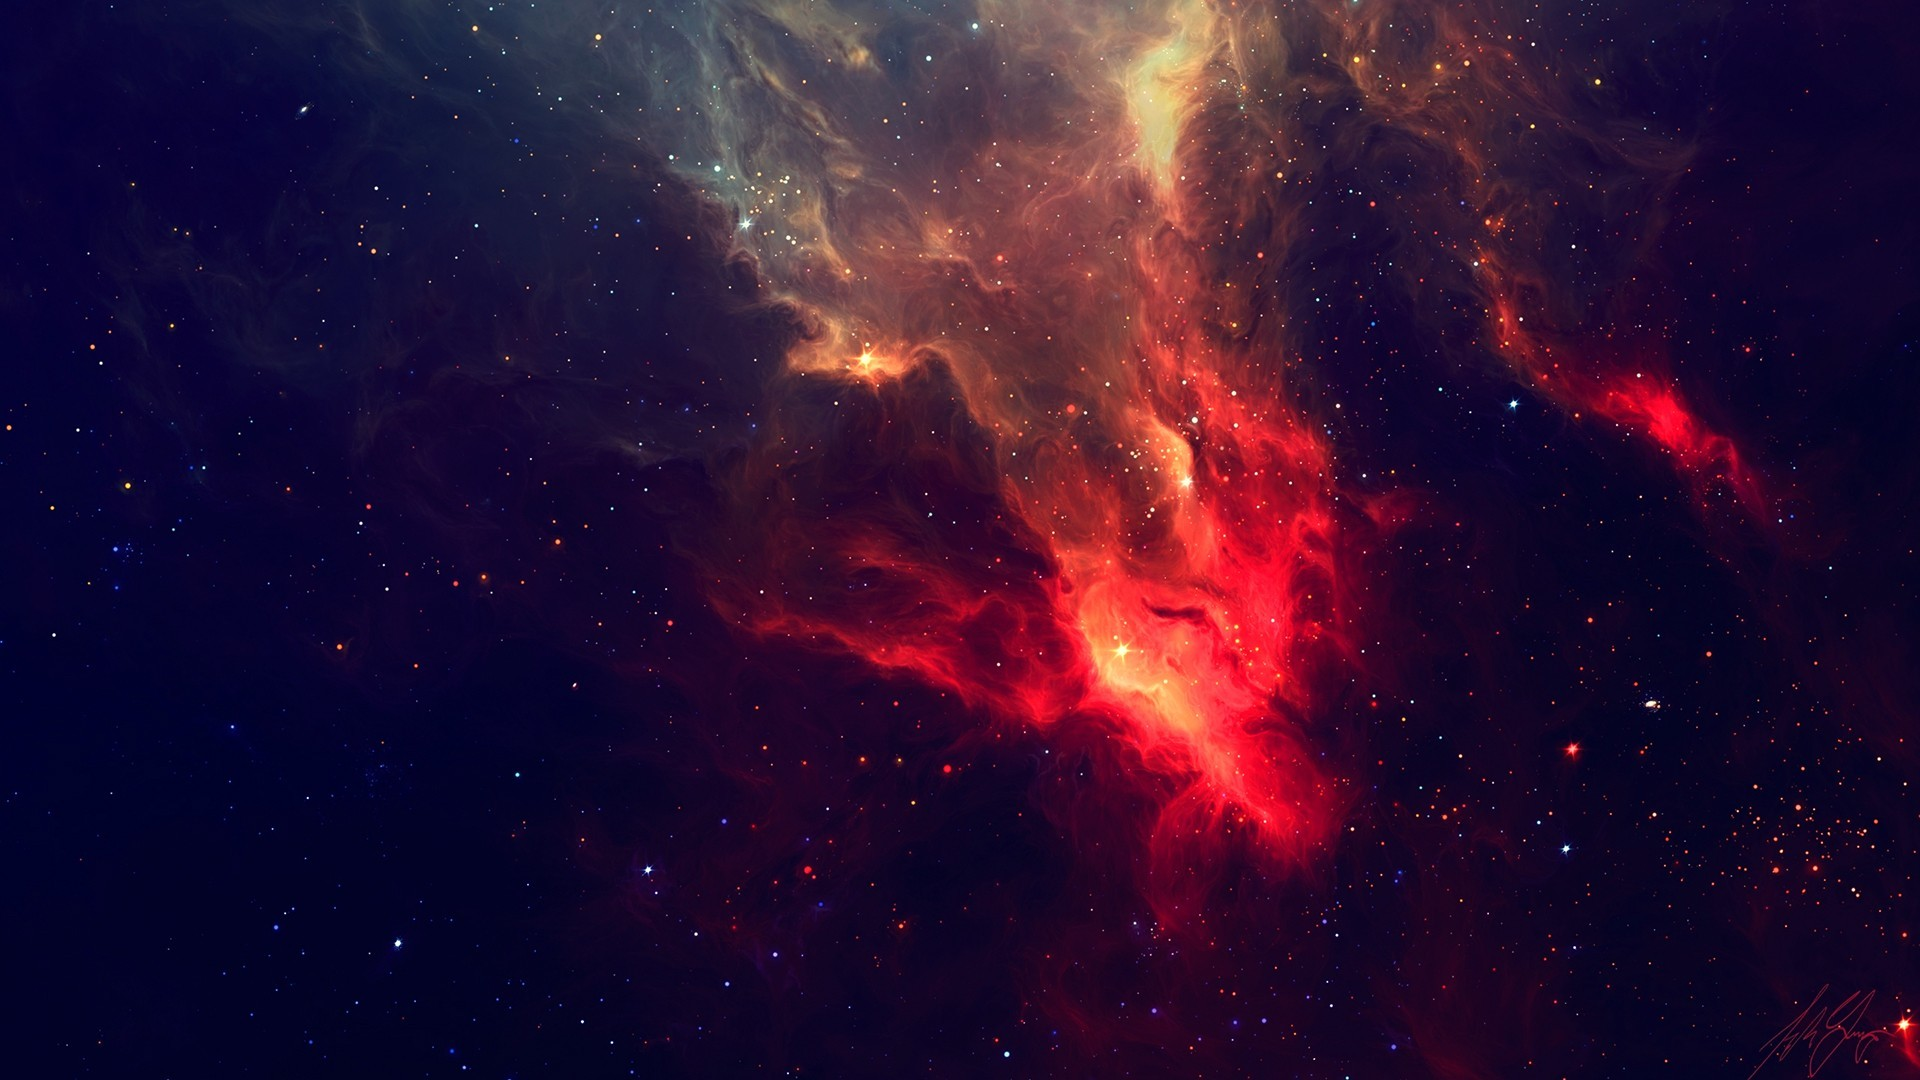 1920x1080 #space, #stars, #nebulae | Wallpaper No. 6693 - wallhaven.